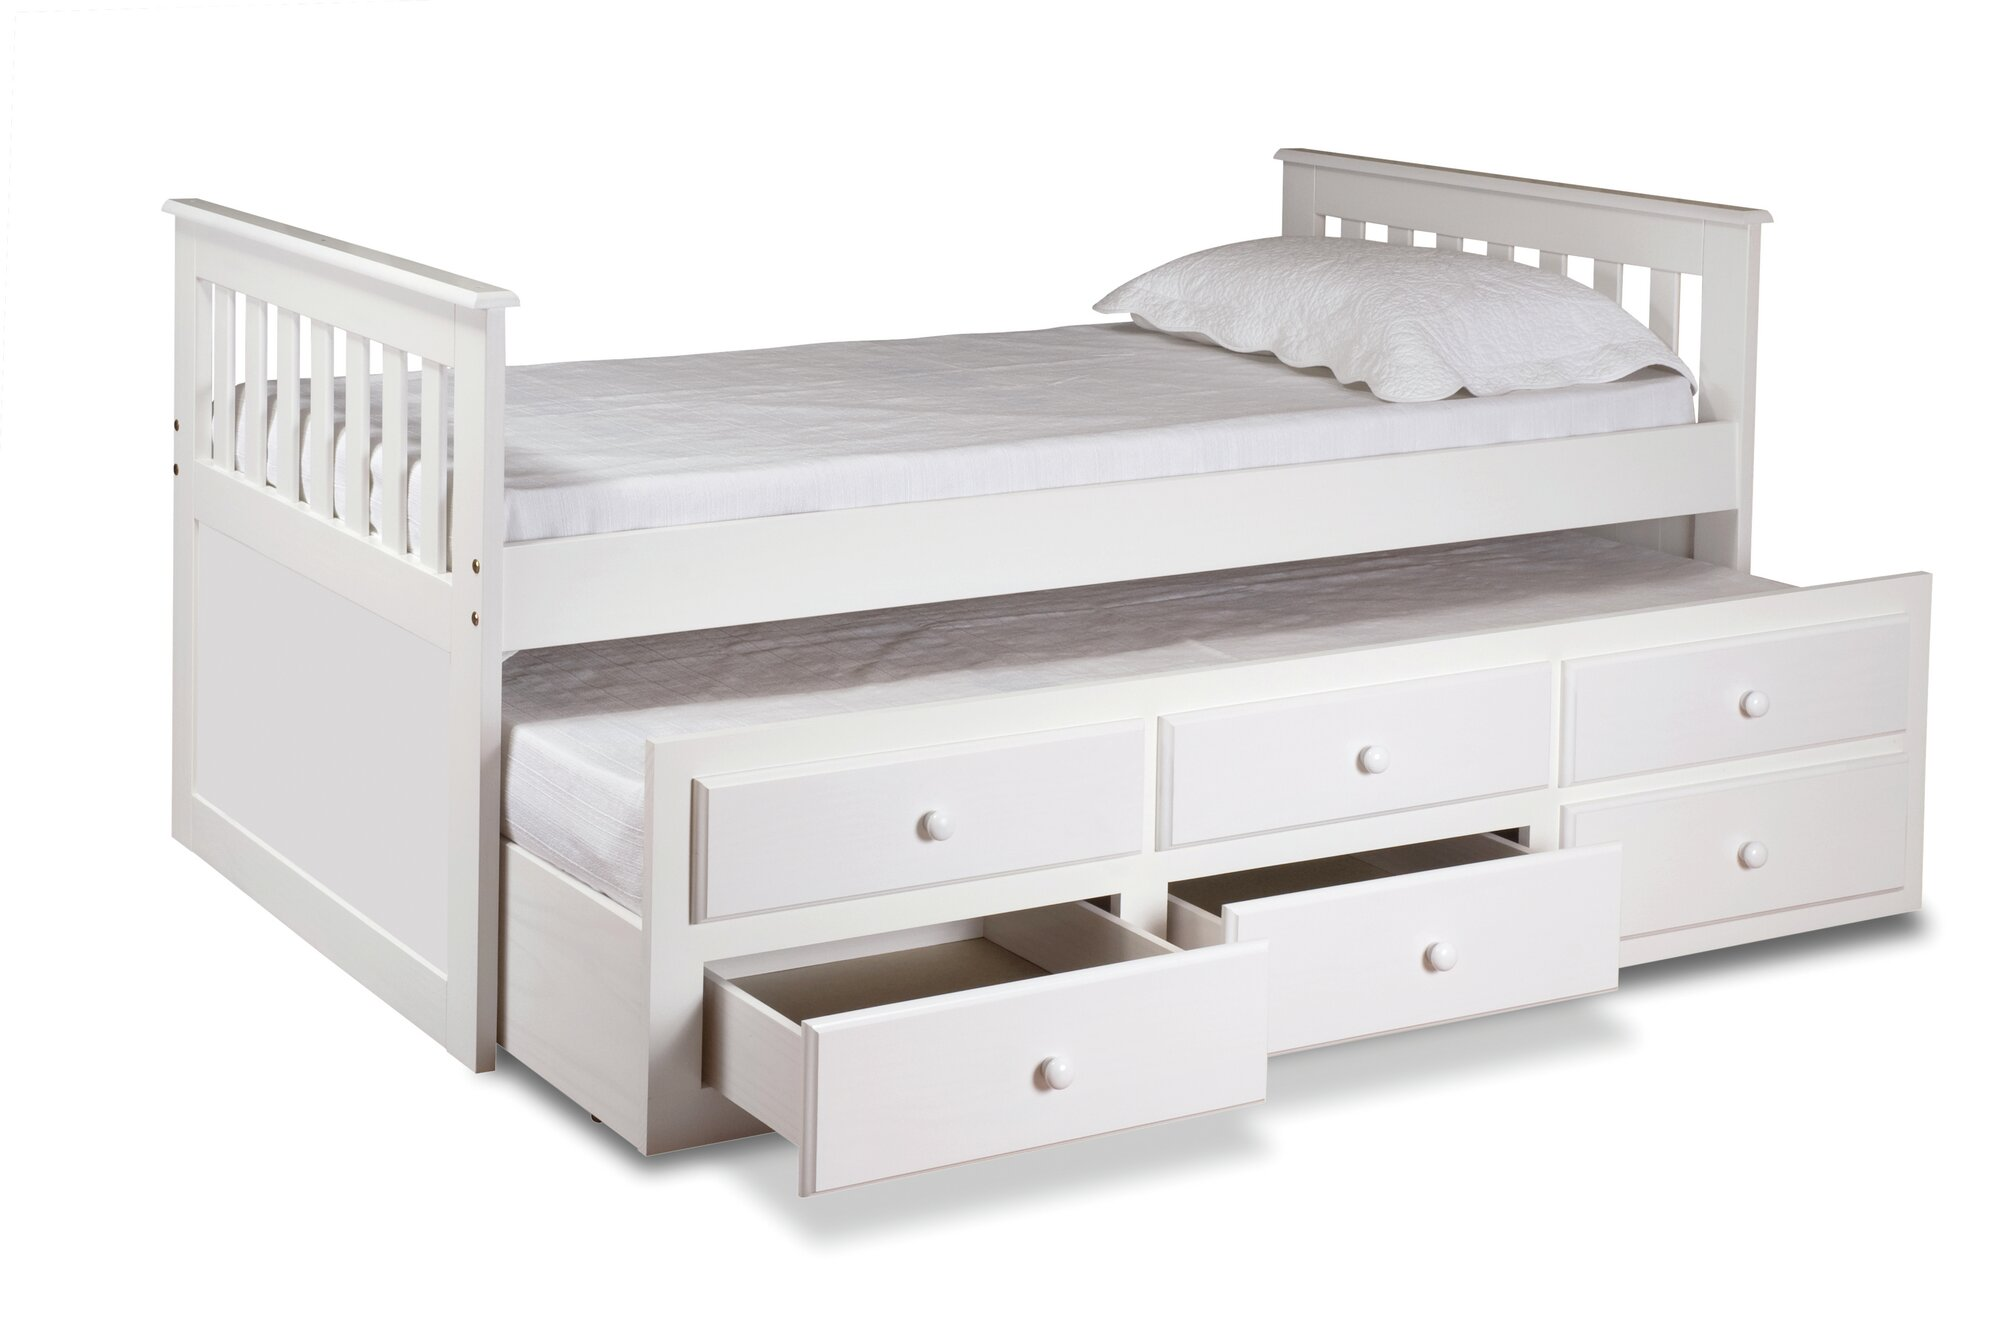 Just Cabinets Furniture And More Home Basics Captains Bed